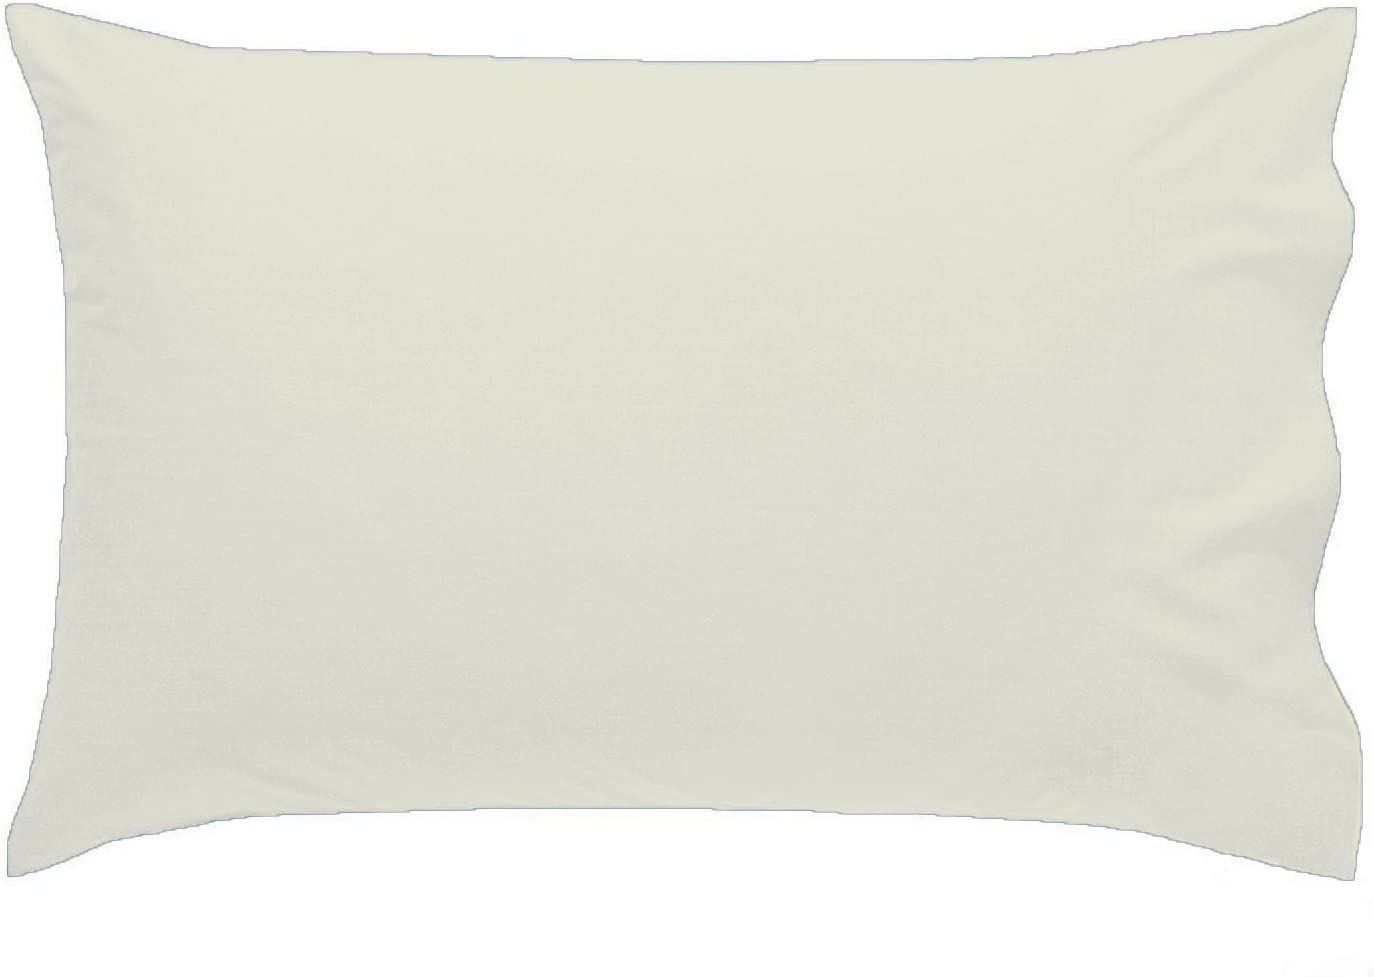 2 x LUXURY PILLOW CASES POLYCOTTON PAIR PACK HOUSEWIFE BEDROOM PILLOW COVER HUMLIN (Cream) by HUMLIN: Amazon.es: Hogar